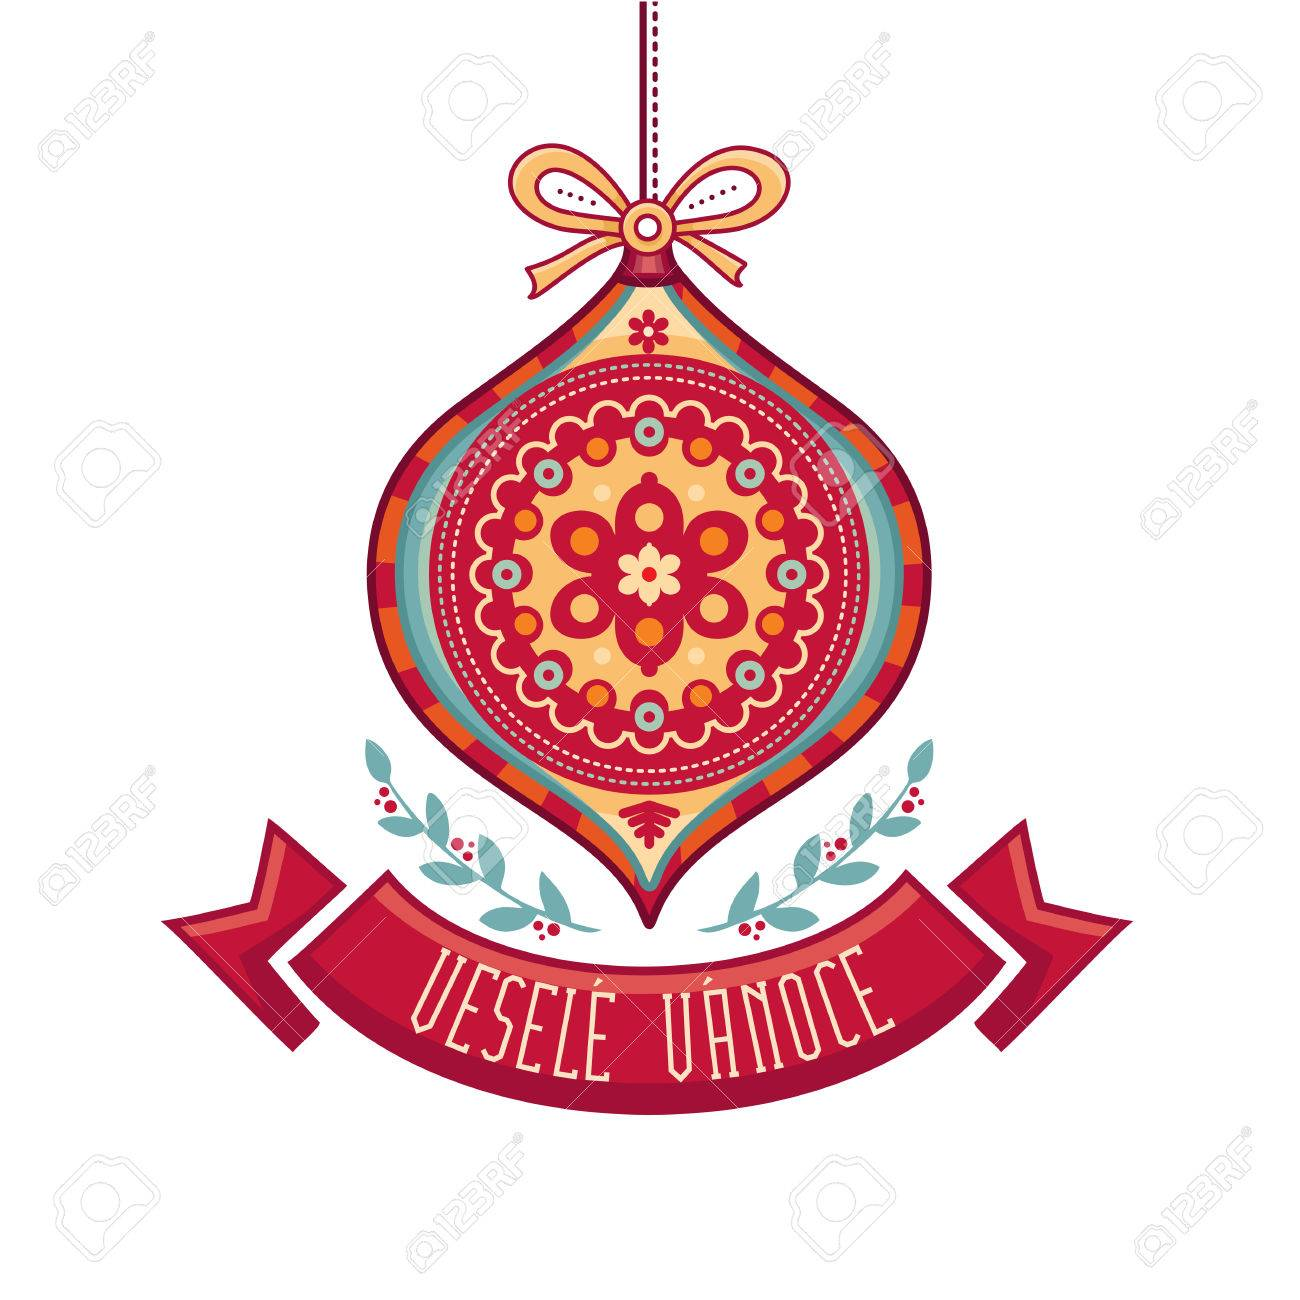 Vesele vanoce christmas message lettering composition with christmas message lettering composition with phrase on czech language warm wishes for happy holidays best for greeting card promotion m4hsunfo